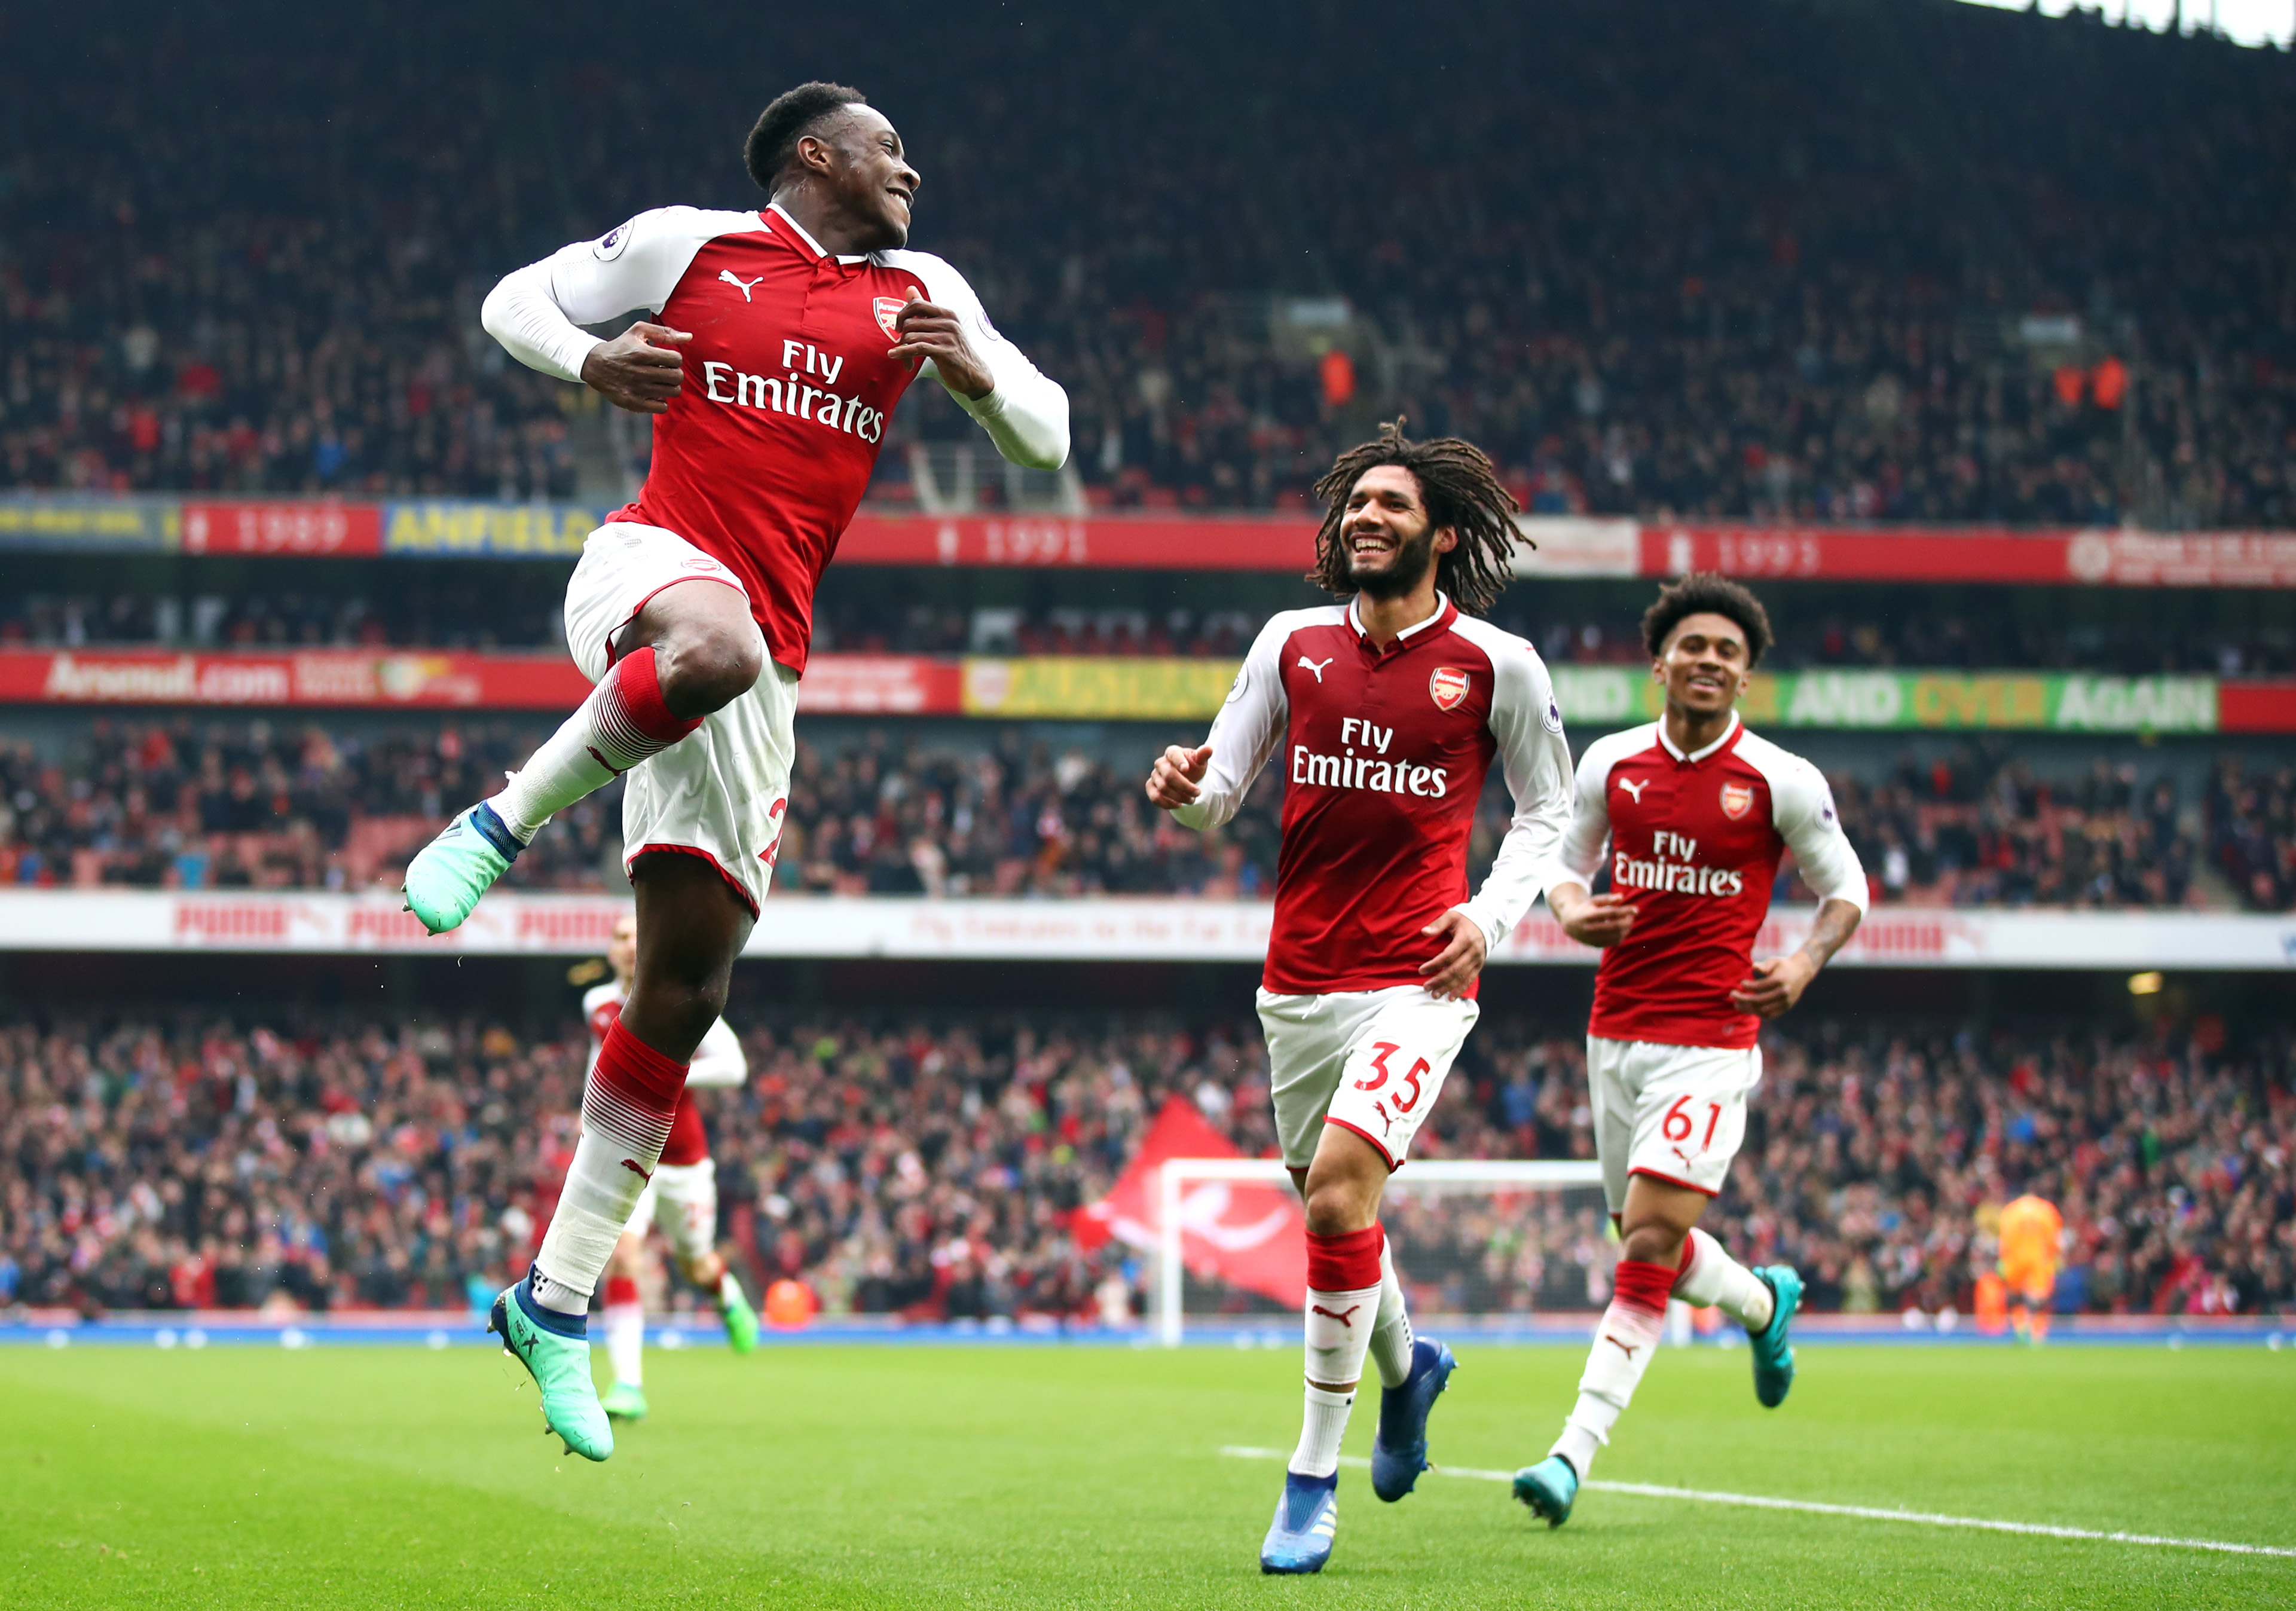 Arsenal chief explains decision to let Danny Welbeck leave on free transfer - Bóng Đá